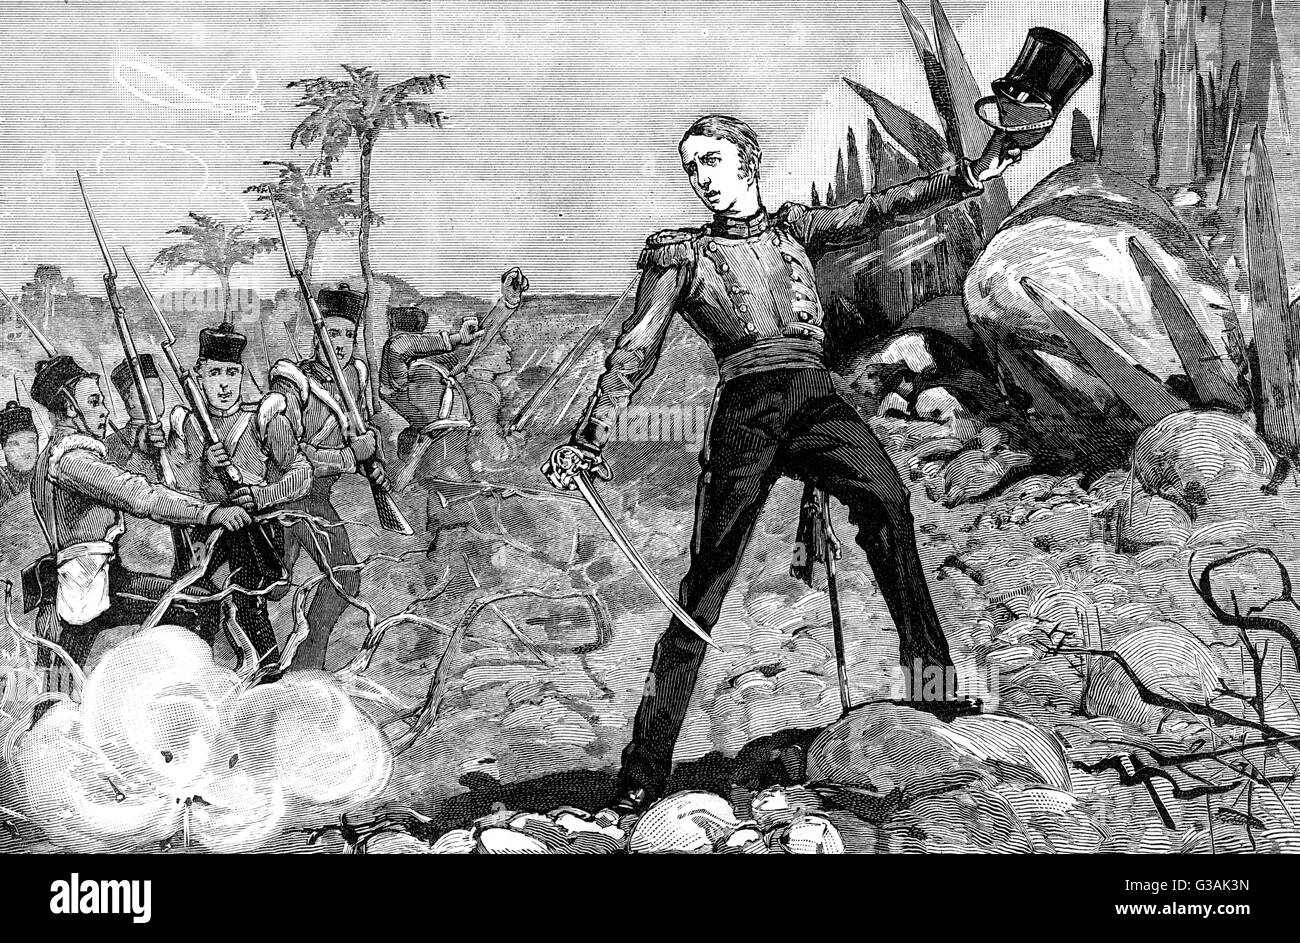 Sir Garnet Wolseley(1833-1913) as a young officer in the British army, storming Myat-Toon's stronghold, Burma, - Stock Image